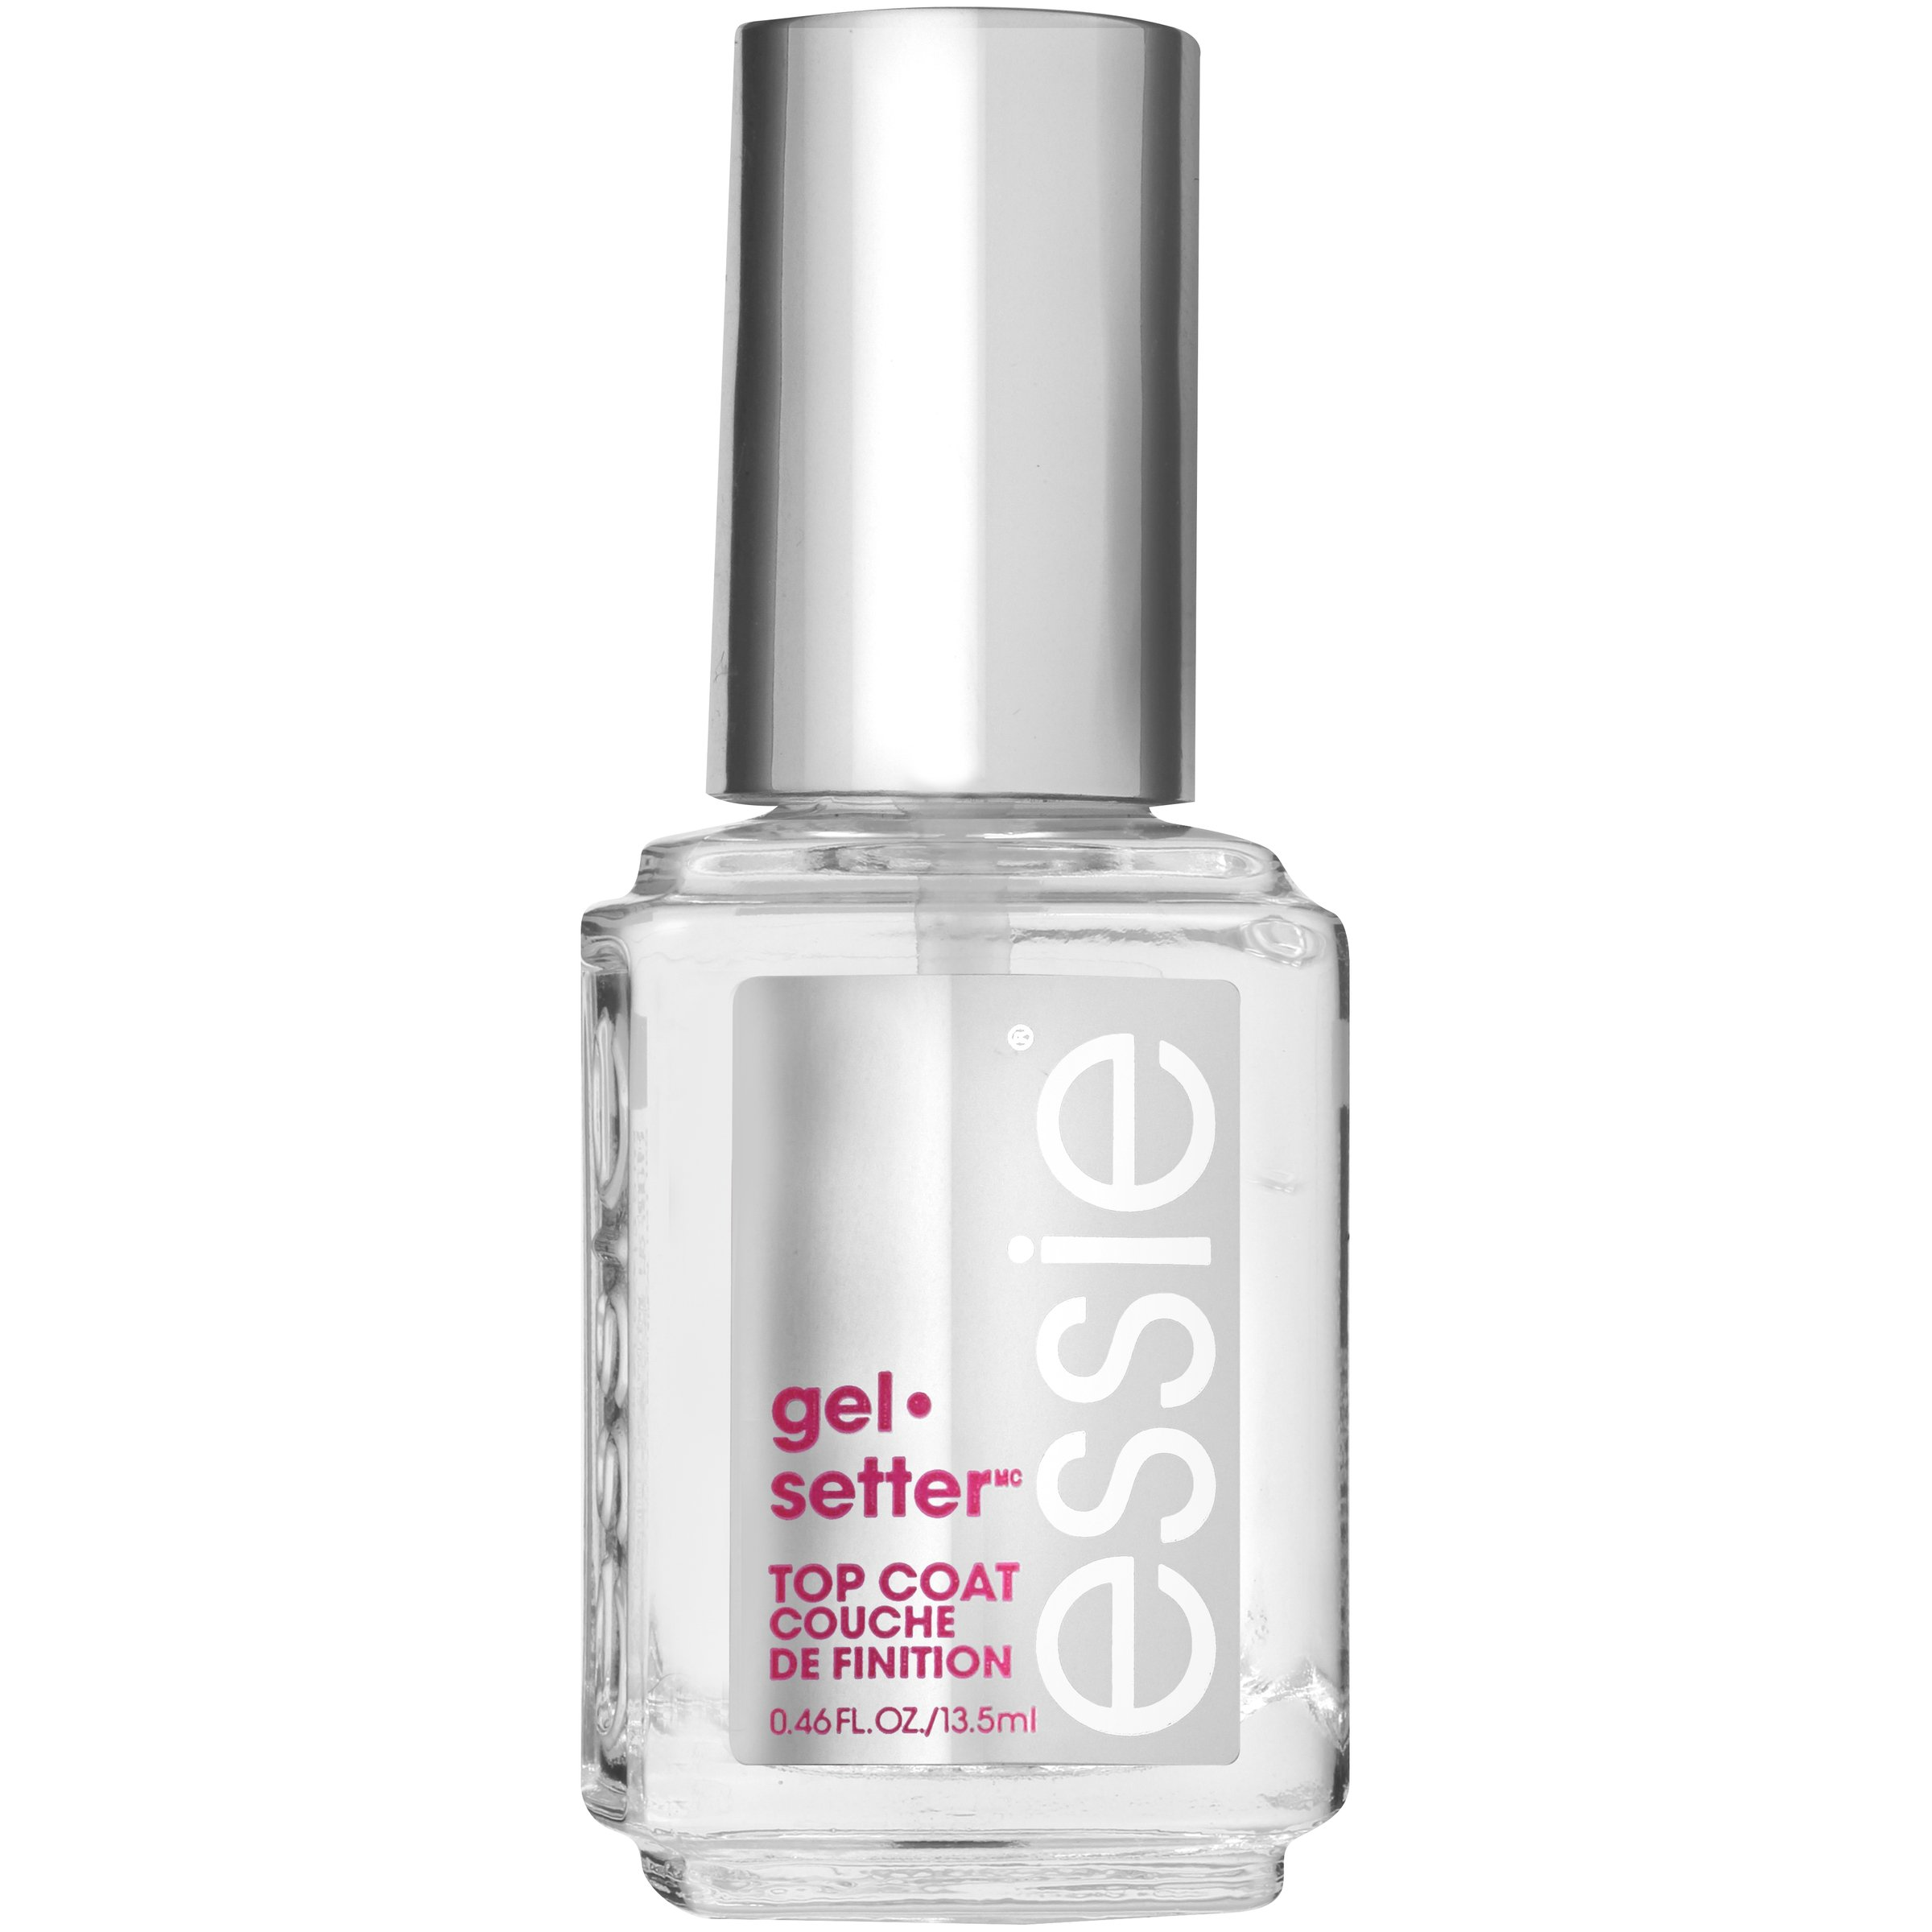 essie Top Coat Nail Polish, Gel-Setter Top Coat, 2-Pack, 0.46 Fl. Oz. by essie